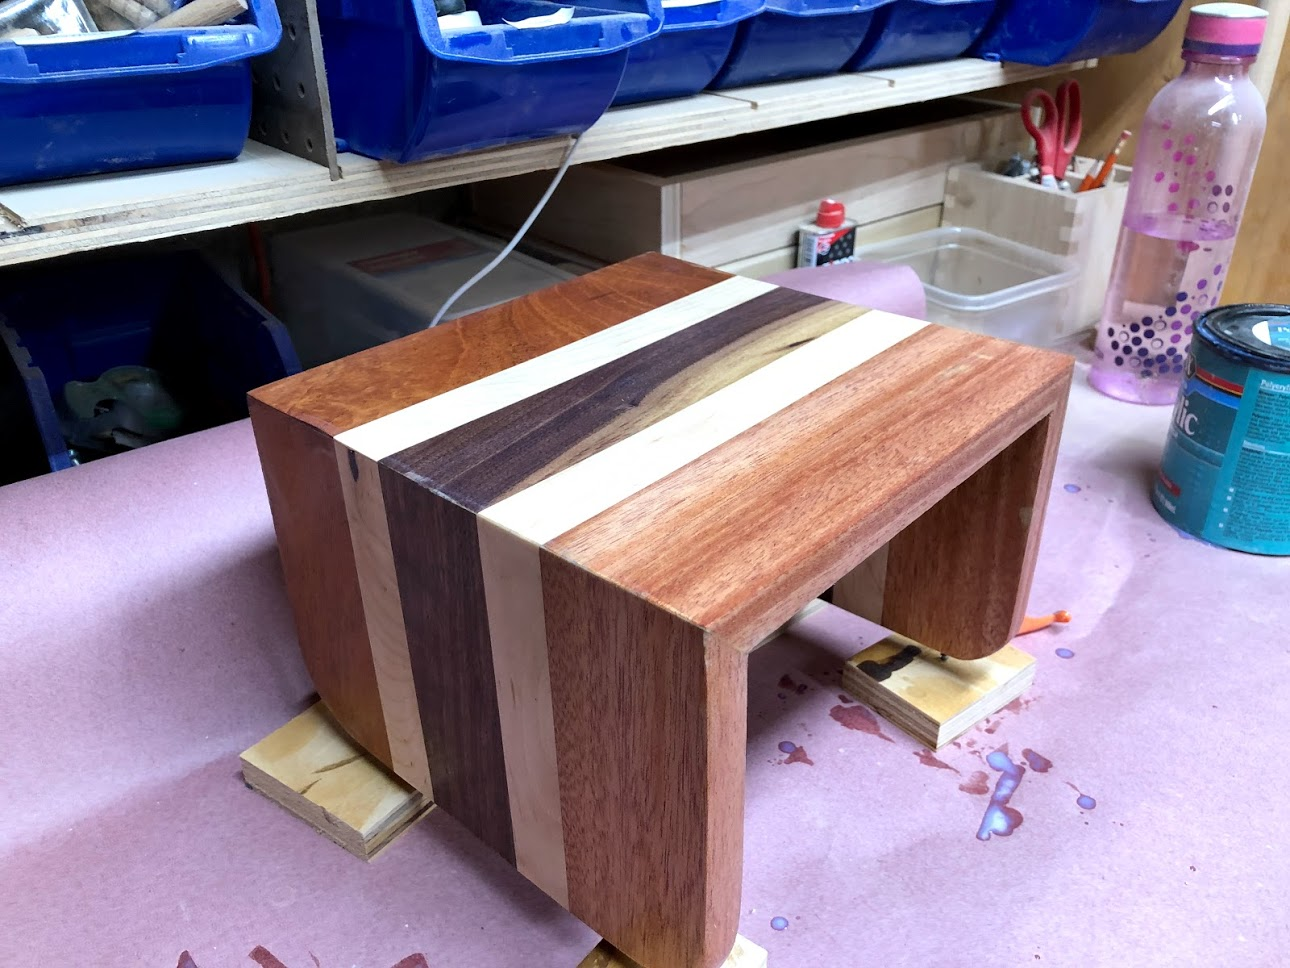 The finish has just been applied and waiting for it to dry, I just love how the wood pops after applying it.